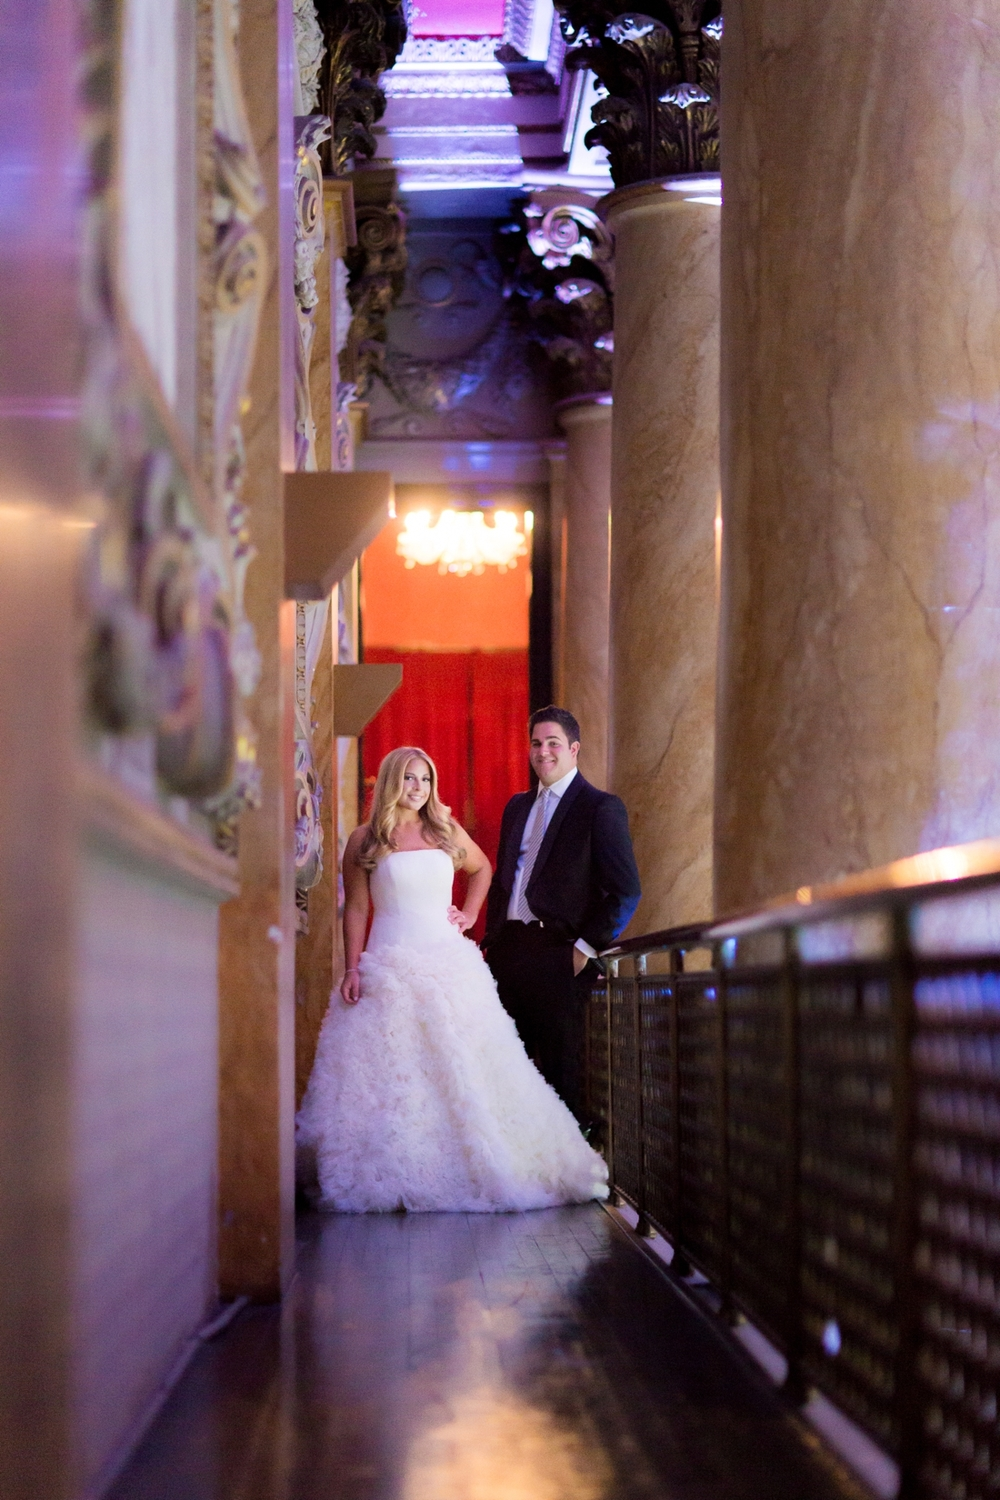 capitale-wedding-photos_0017.jpg